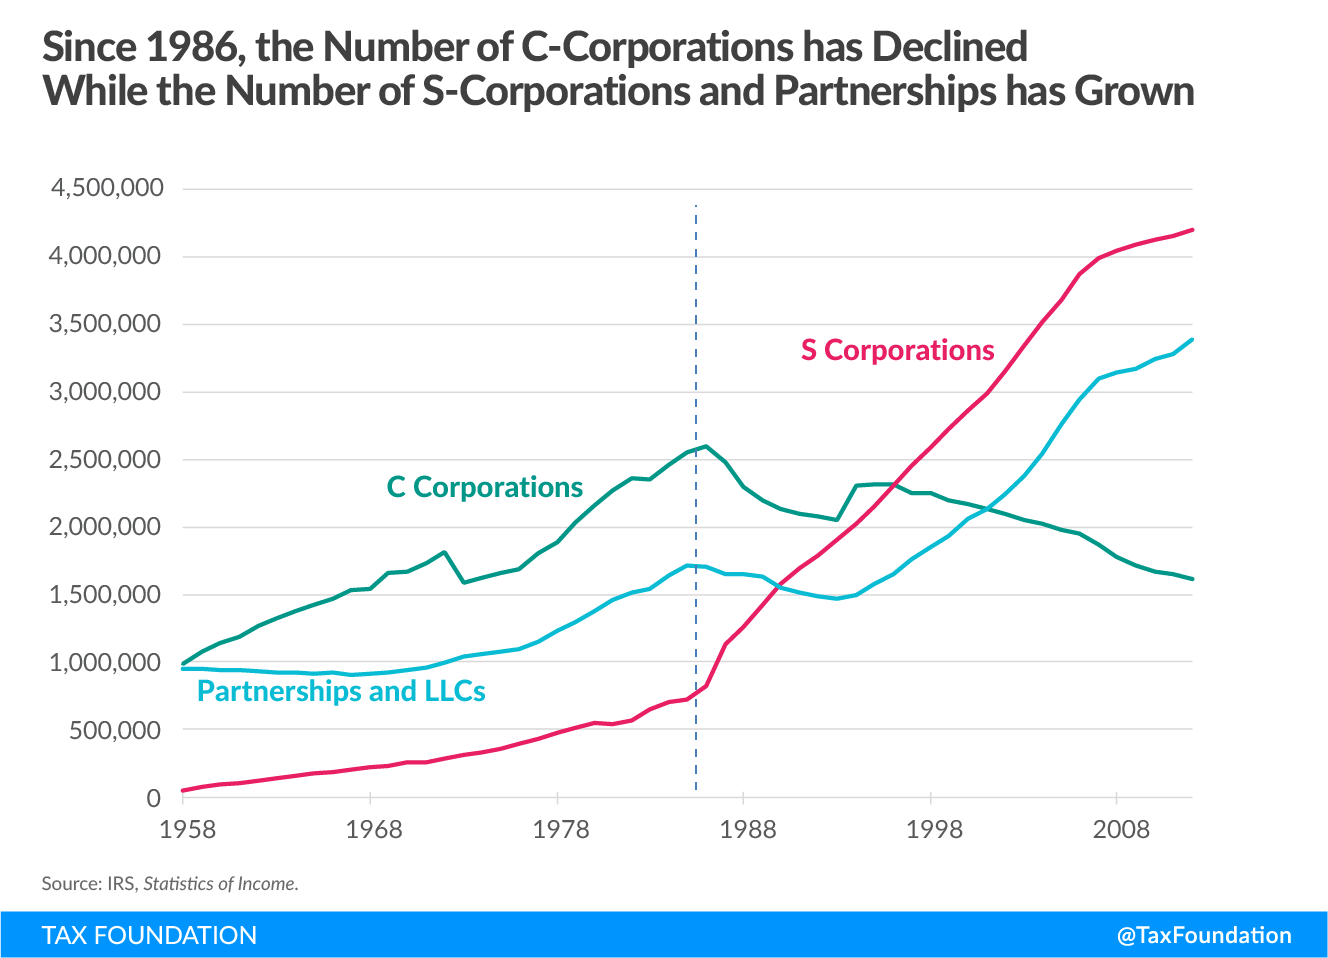 Since 1986, the number of C-corporations has declined while the number of s-corporations and partnerships has grown, entrepreneurship, u.s. progressive tax code, income inequality, 70 percent tax, saez and zucman